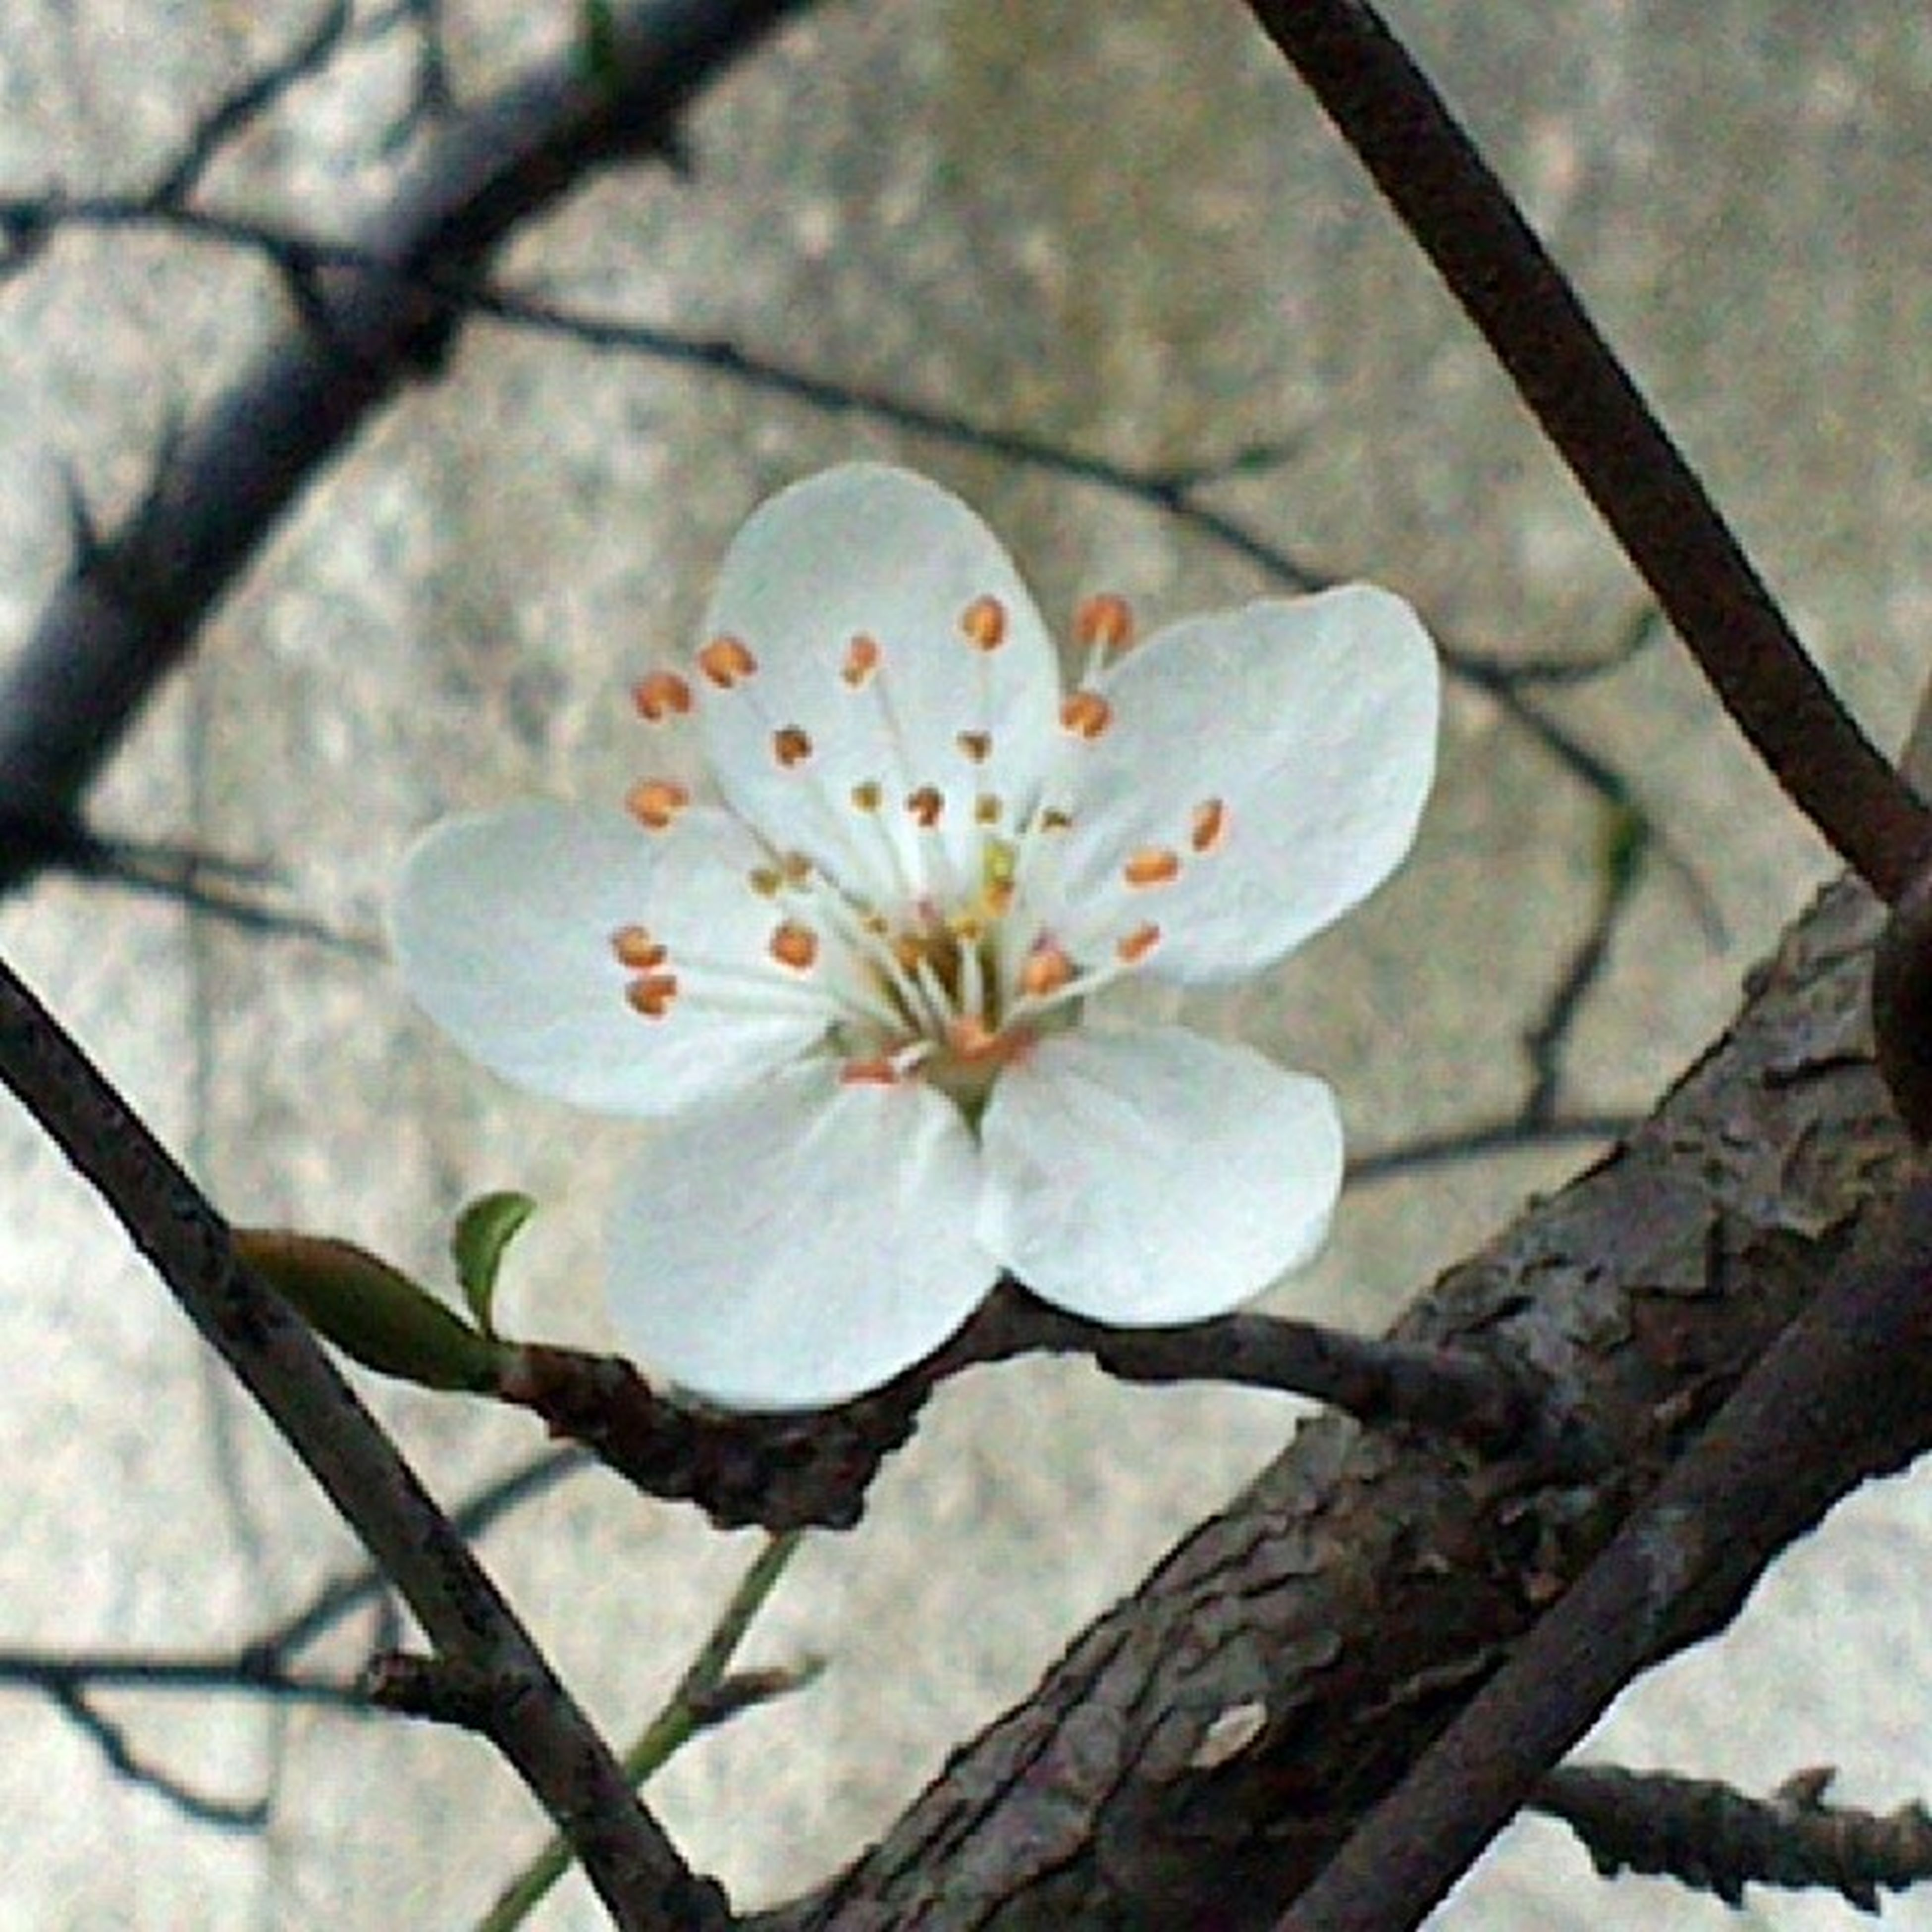 flower, growth, freshness, fragility, branch, petal, nature, beauty in nature, focus on foreground, close-up, flower head, white color, tree, blossom, blooming, in bloom, day, outdoors, botany, no people